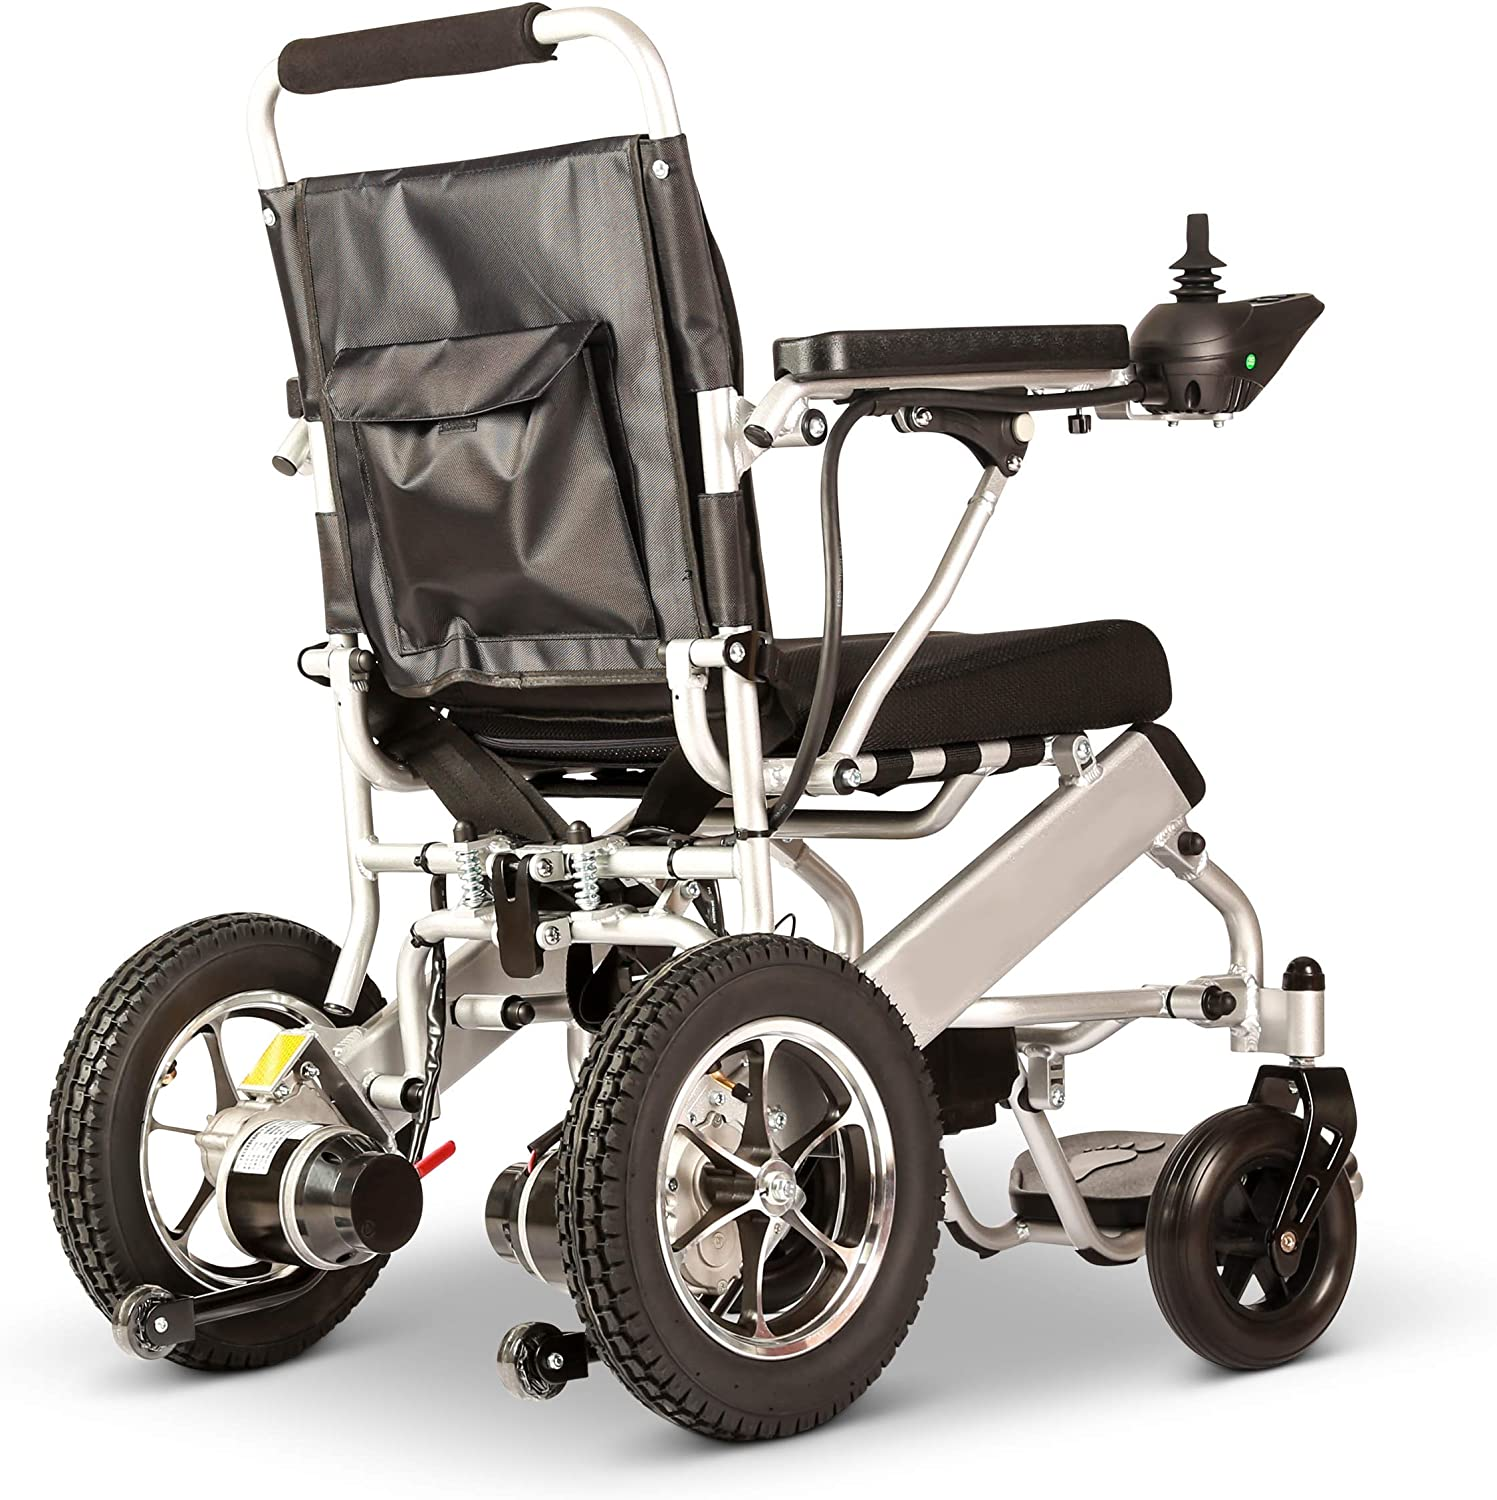 New Model 2020 Fold & Travel Lightweight Motorized Electric Power Wheelchair Scooter, Aviation Travel Safe Electric Wheelchair Heavy Duty Power Wheelchair (17 Inch Seat Silver)